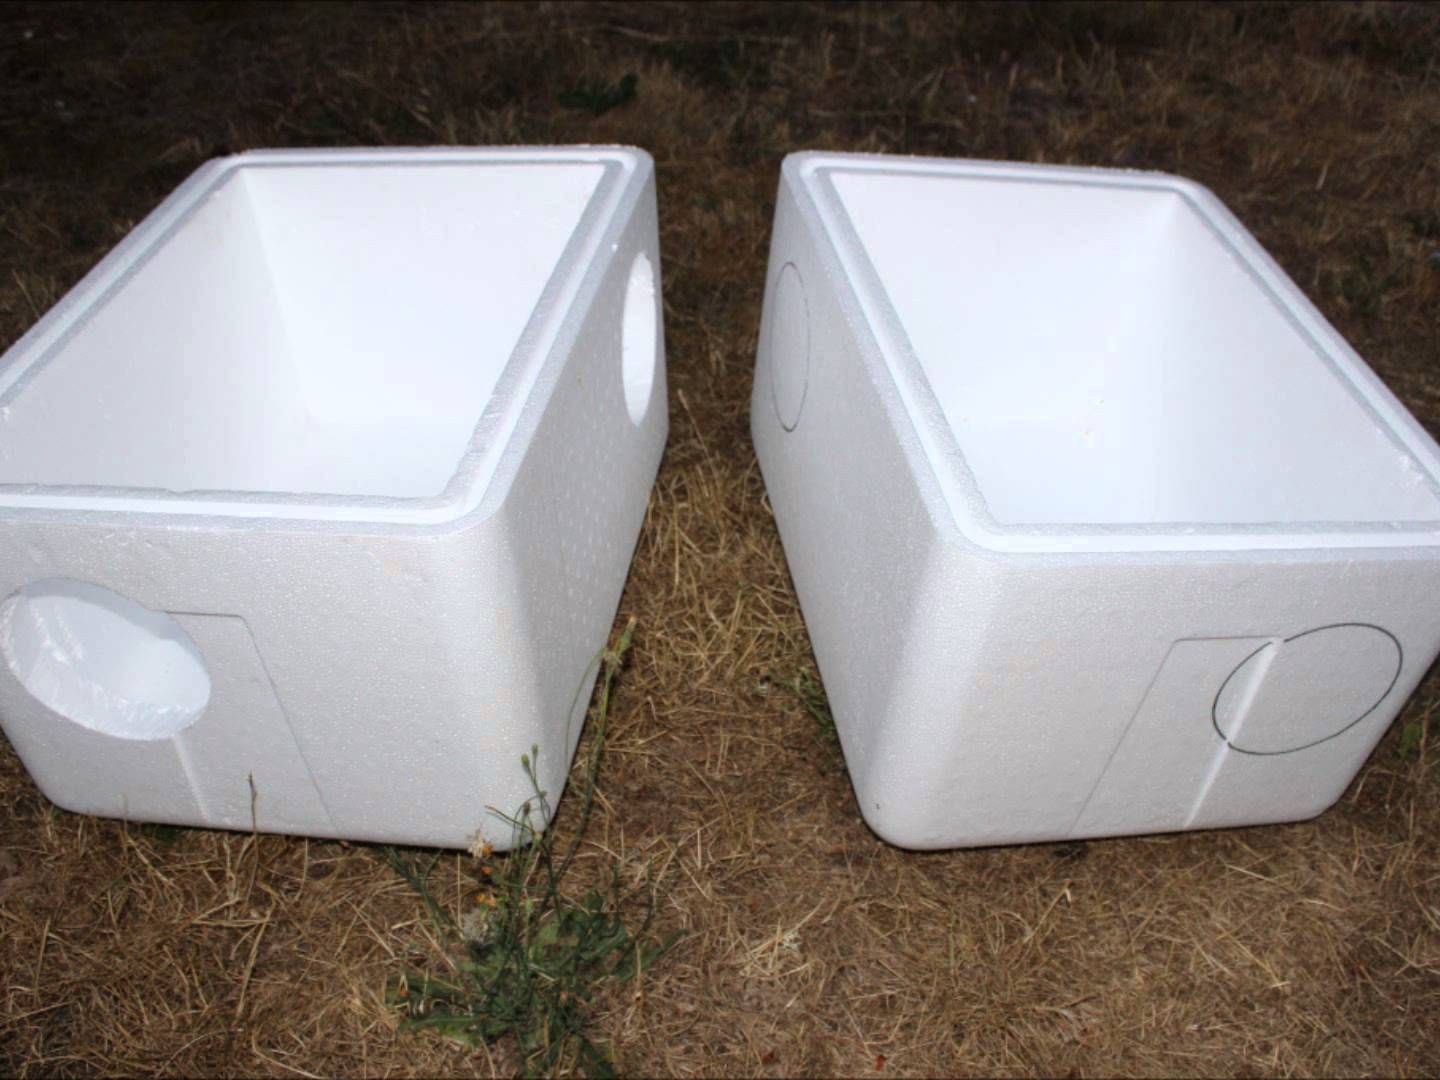 Make an extra large feral cat shelter from styrofoam